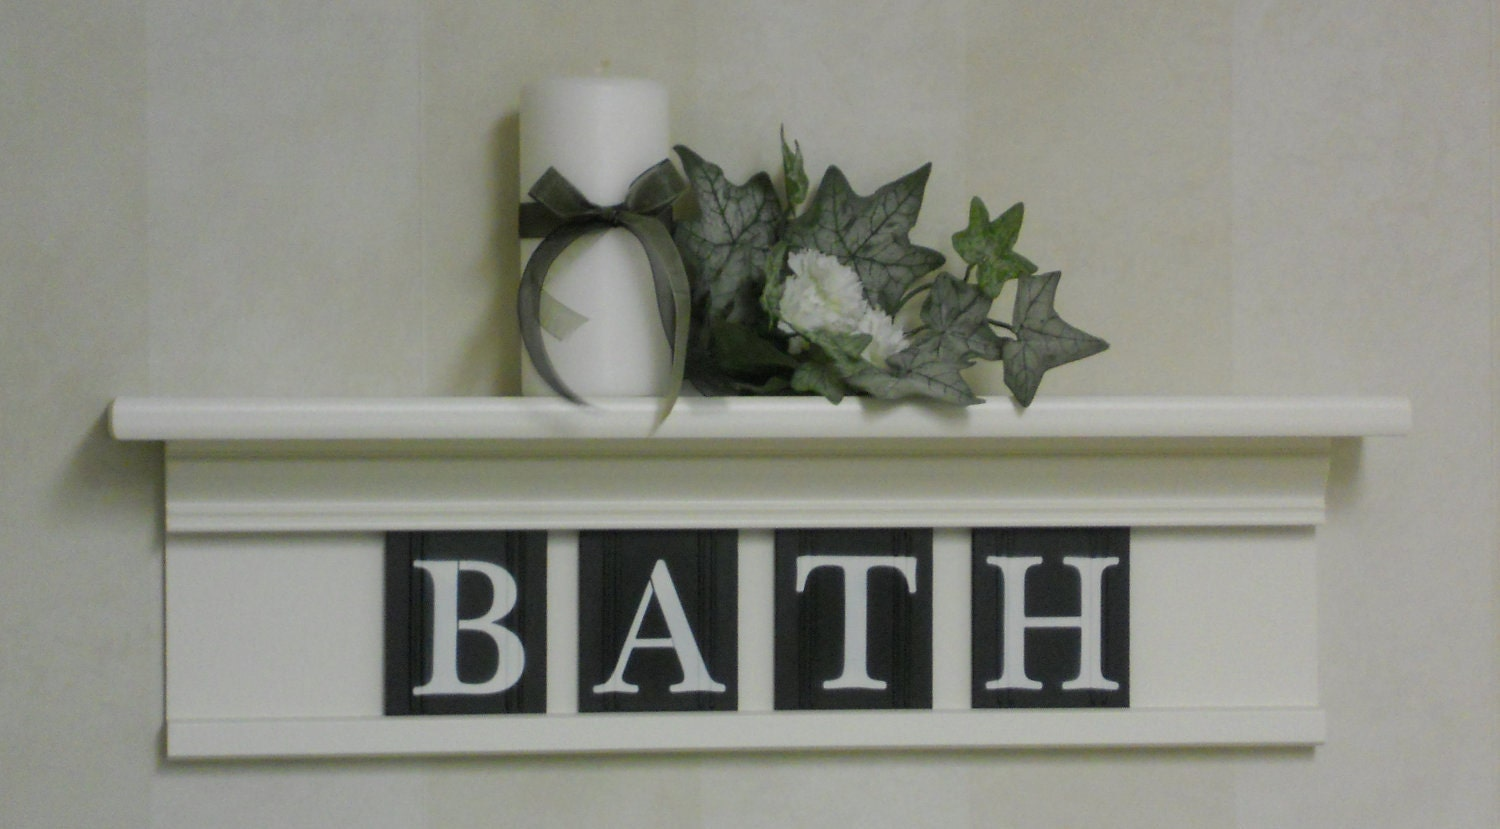 White Wall Decor For Bathroom : Bathroom wall shelf home decor off white and black or